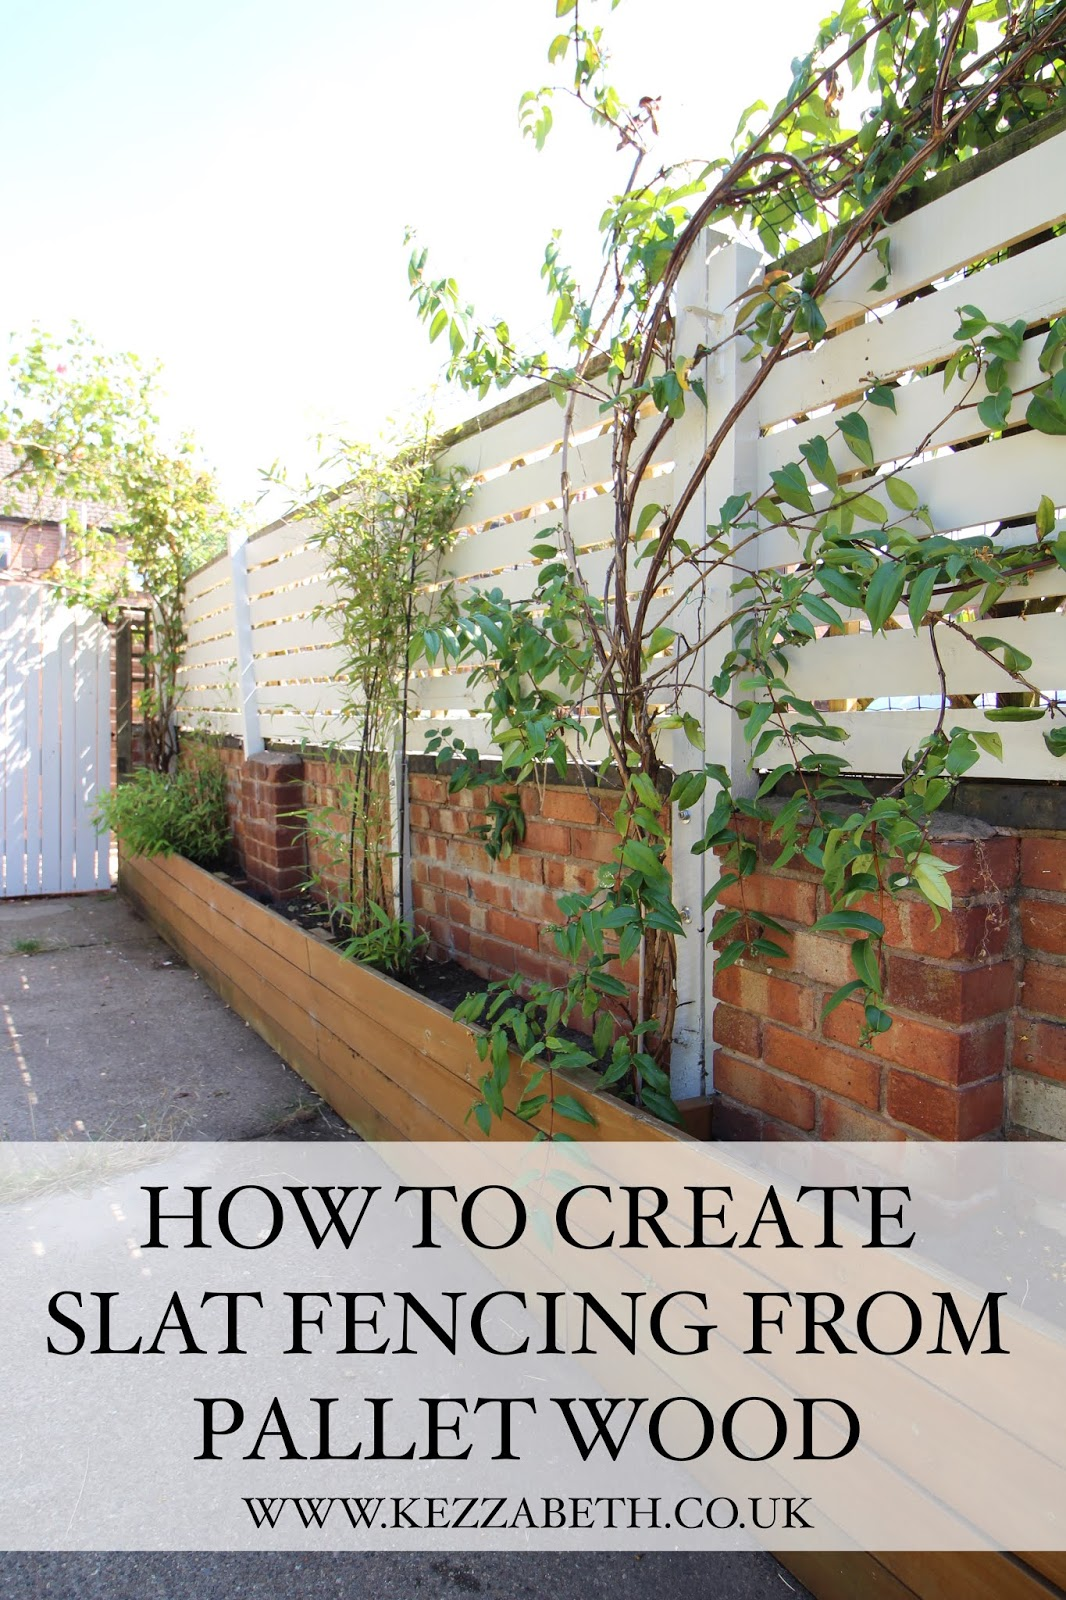 DIY slat fencing from pallet wood